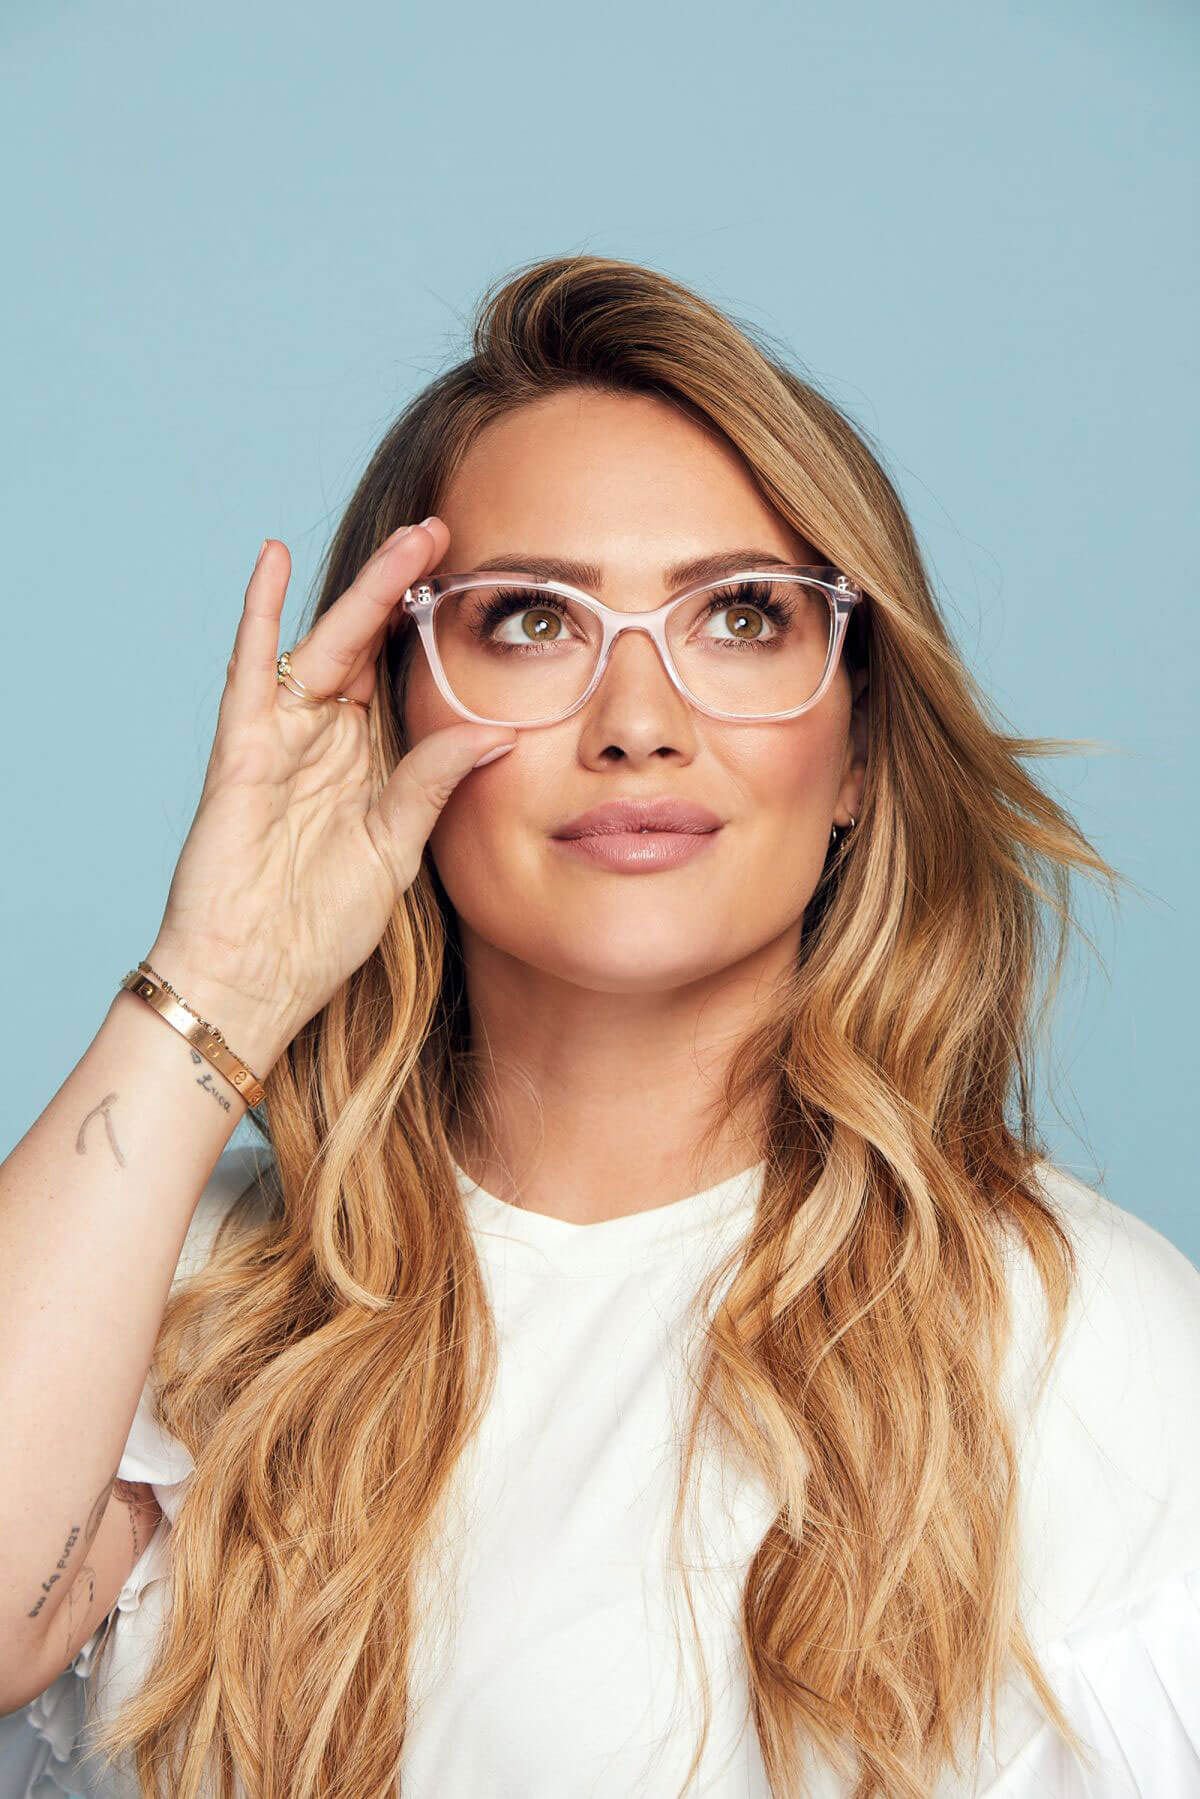 Hilary Duff Poses for Hilary Duff Collection with # ... Hilary Duff